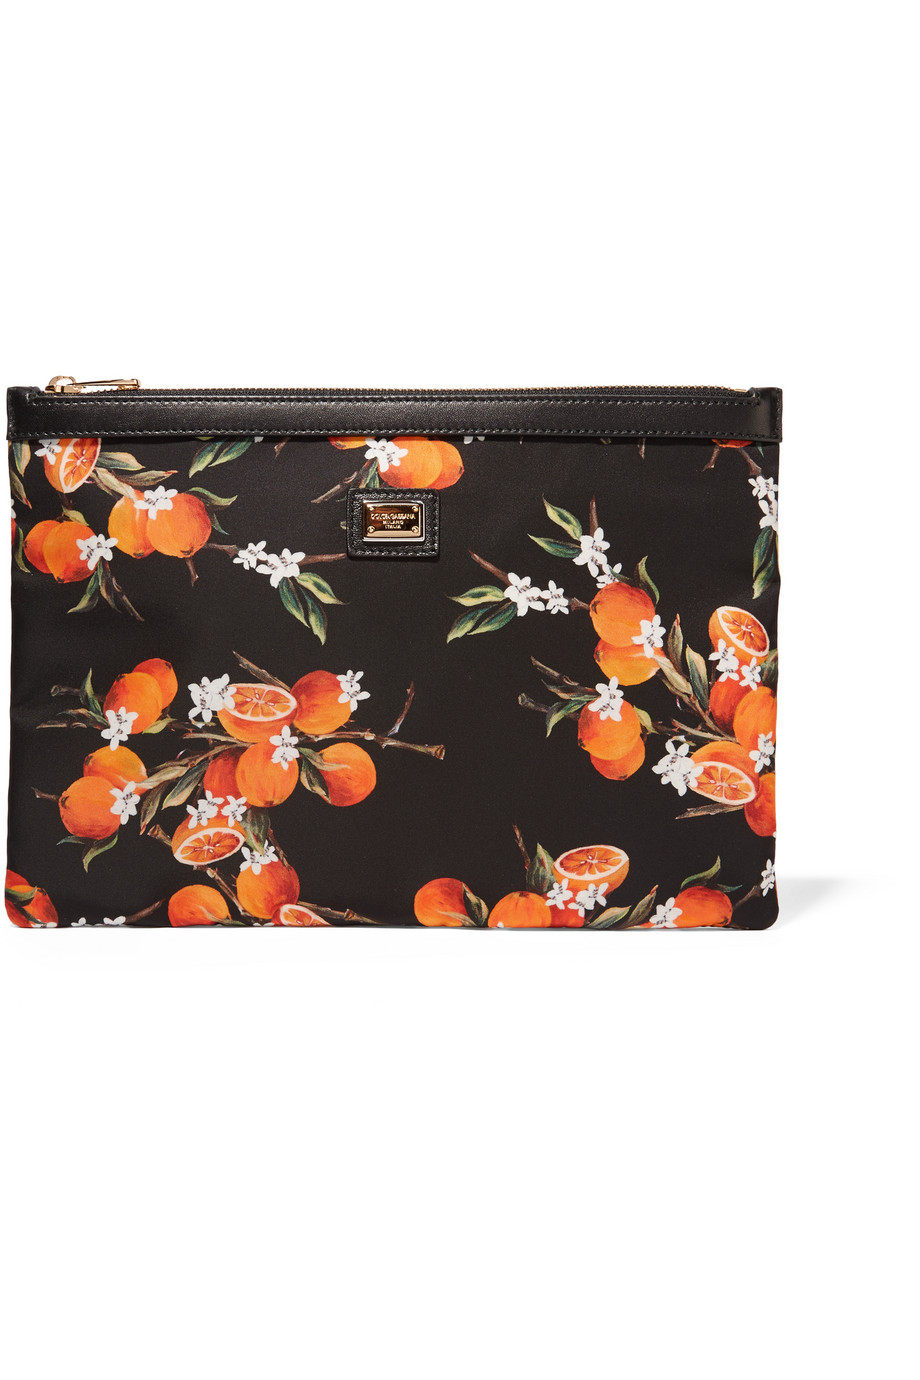 Dolce & Gabbana Leather-Trimmed Printed Canvas Pouch